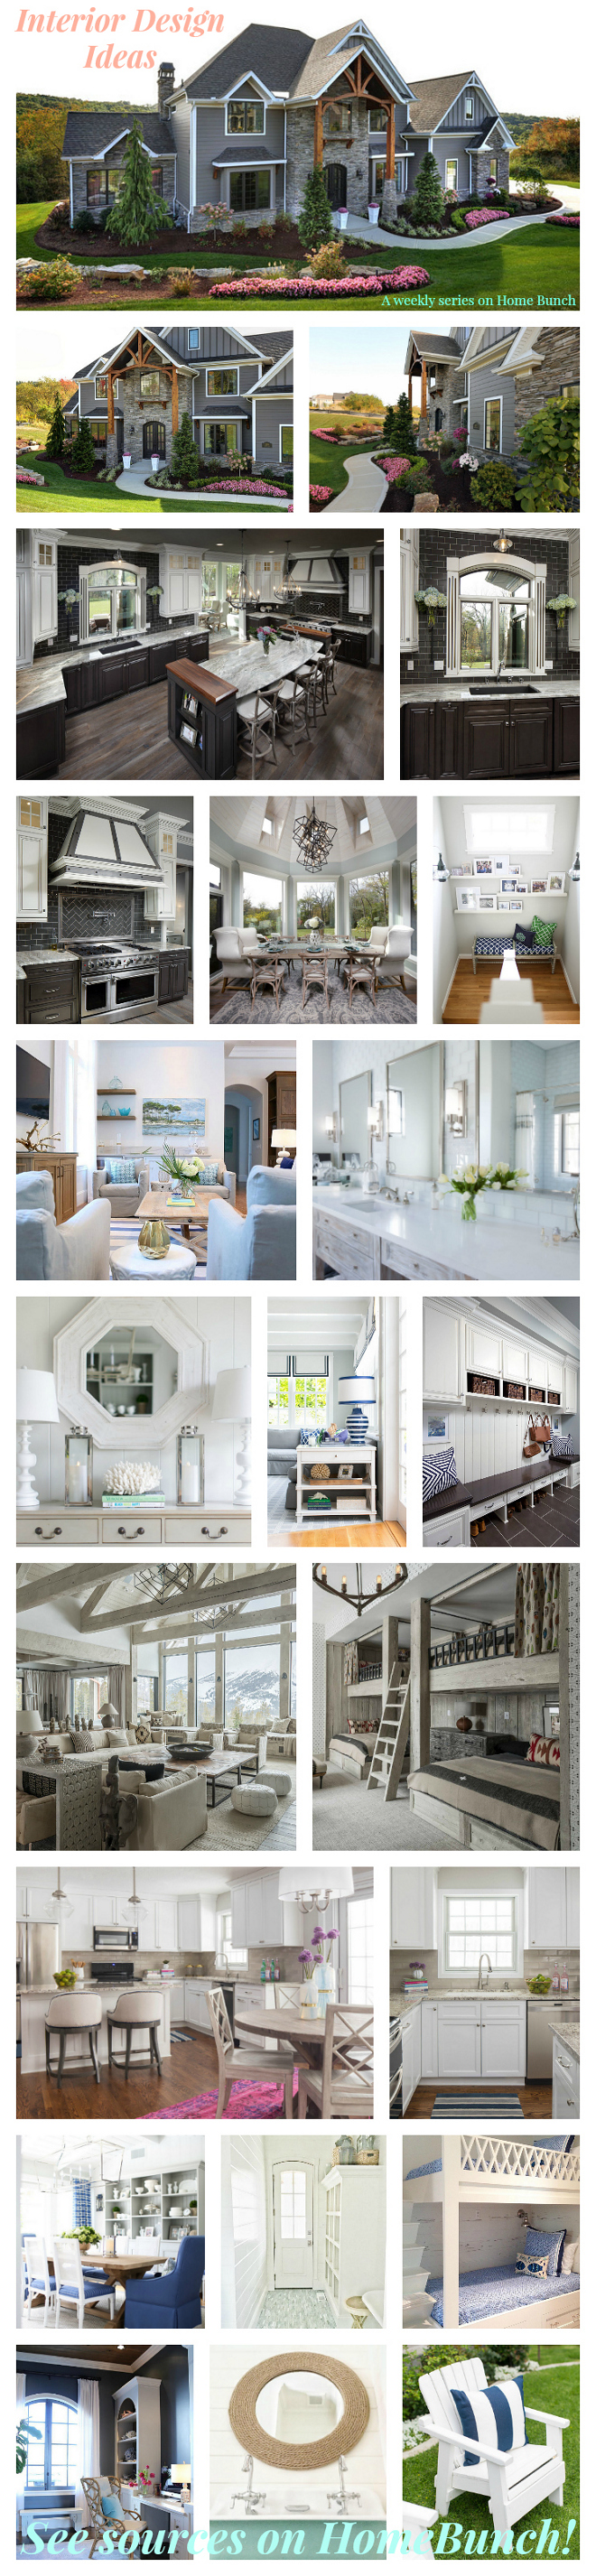 Interior Design Ideas Weekly Series With The